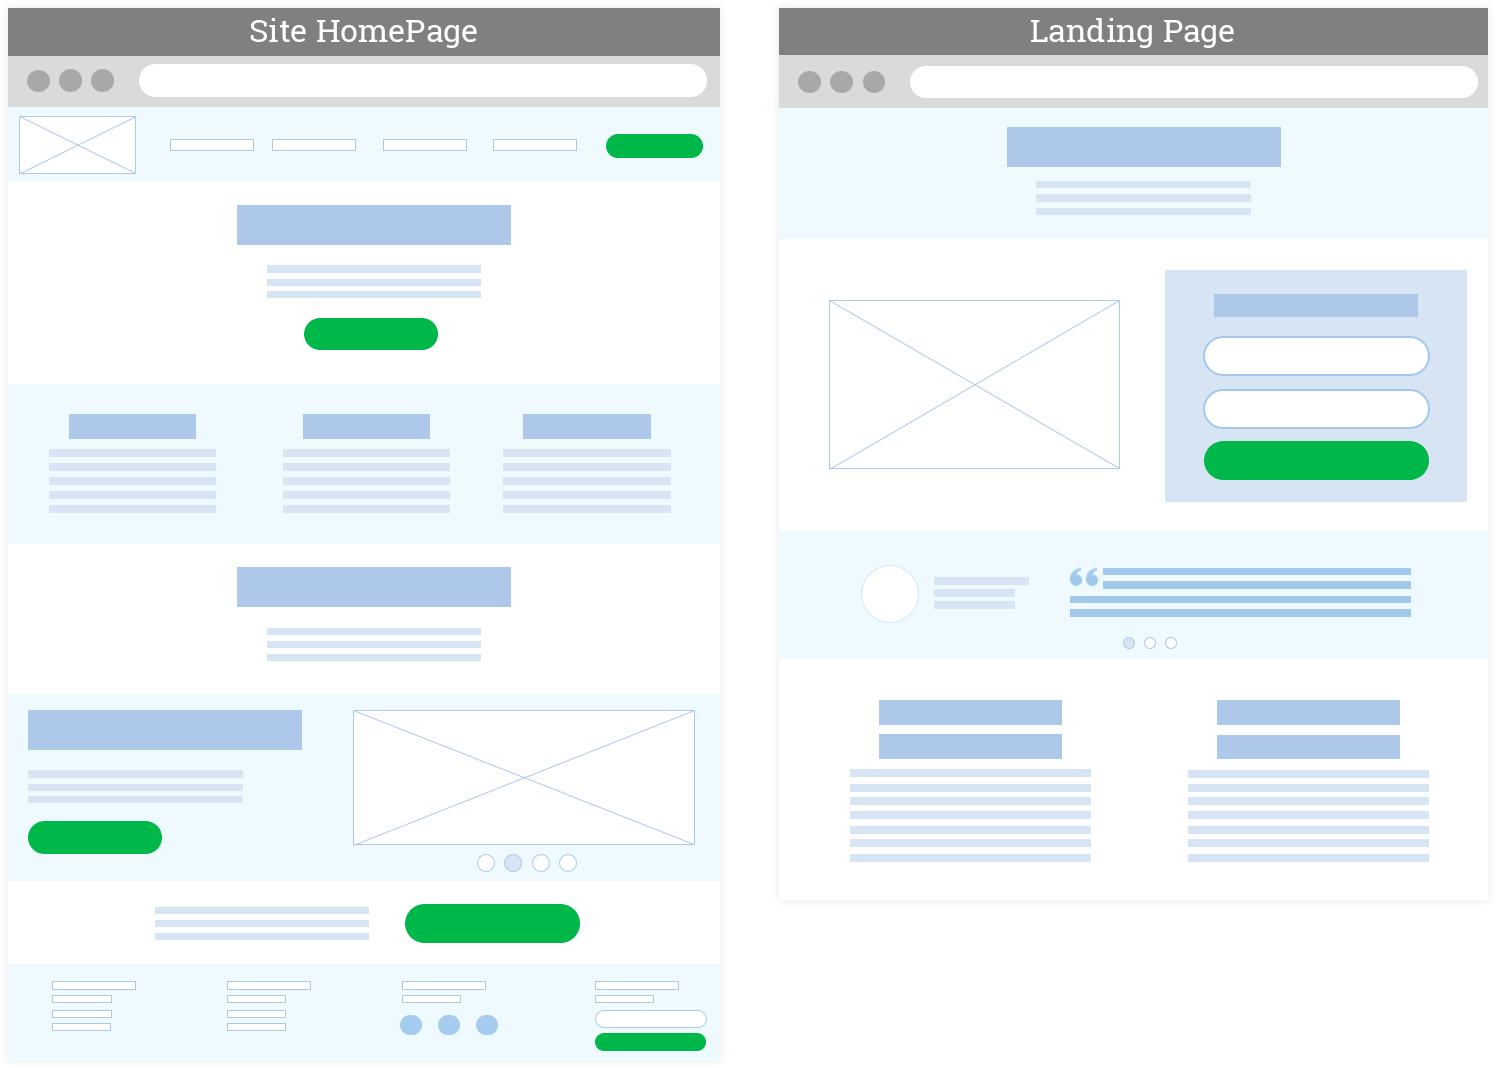 Wireframes site homepage and landing page